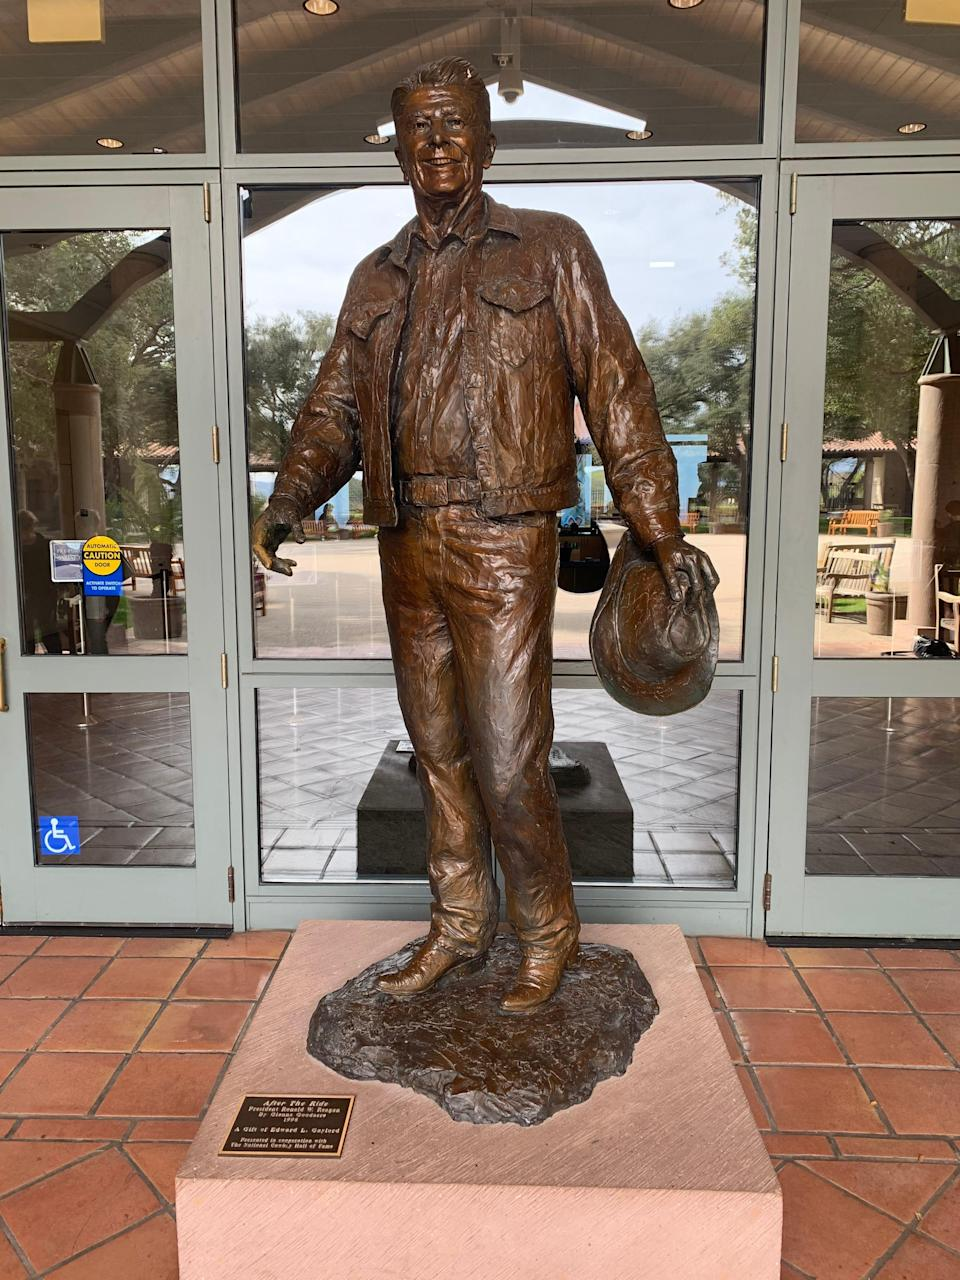 The museum at the Ronald Reagan Presidential Library in Simi Valley, Calif., is scheduled to reopen to the public May 26.